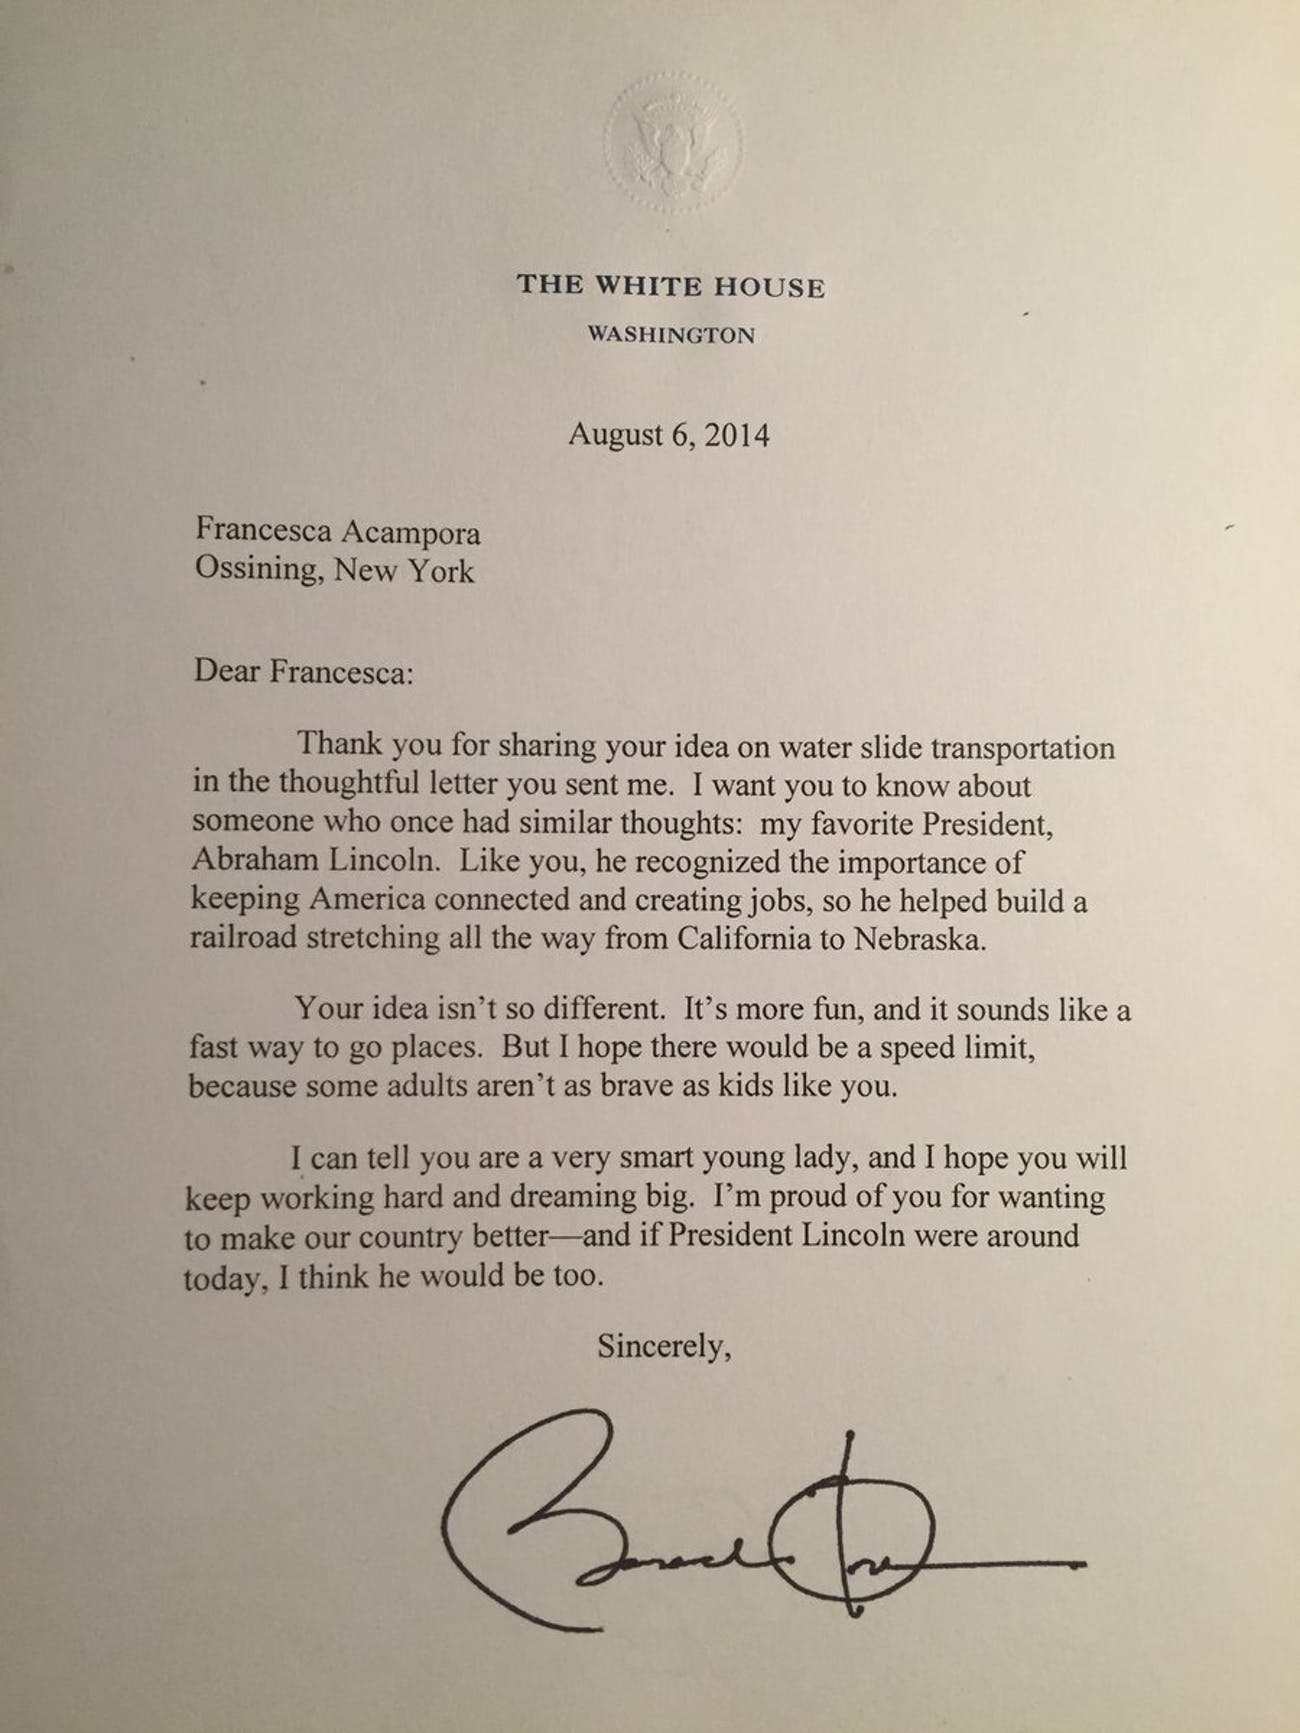 This Letter Shows Obama's Response to an Interstate Waterslide